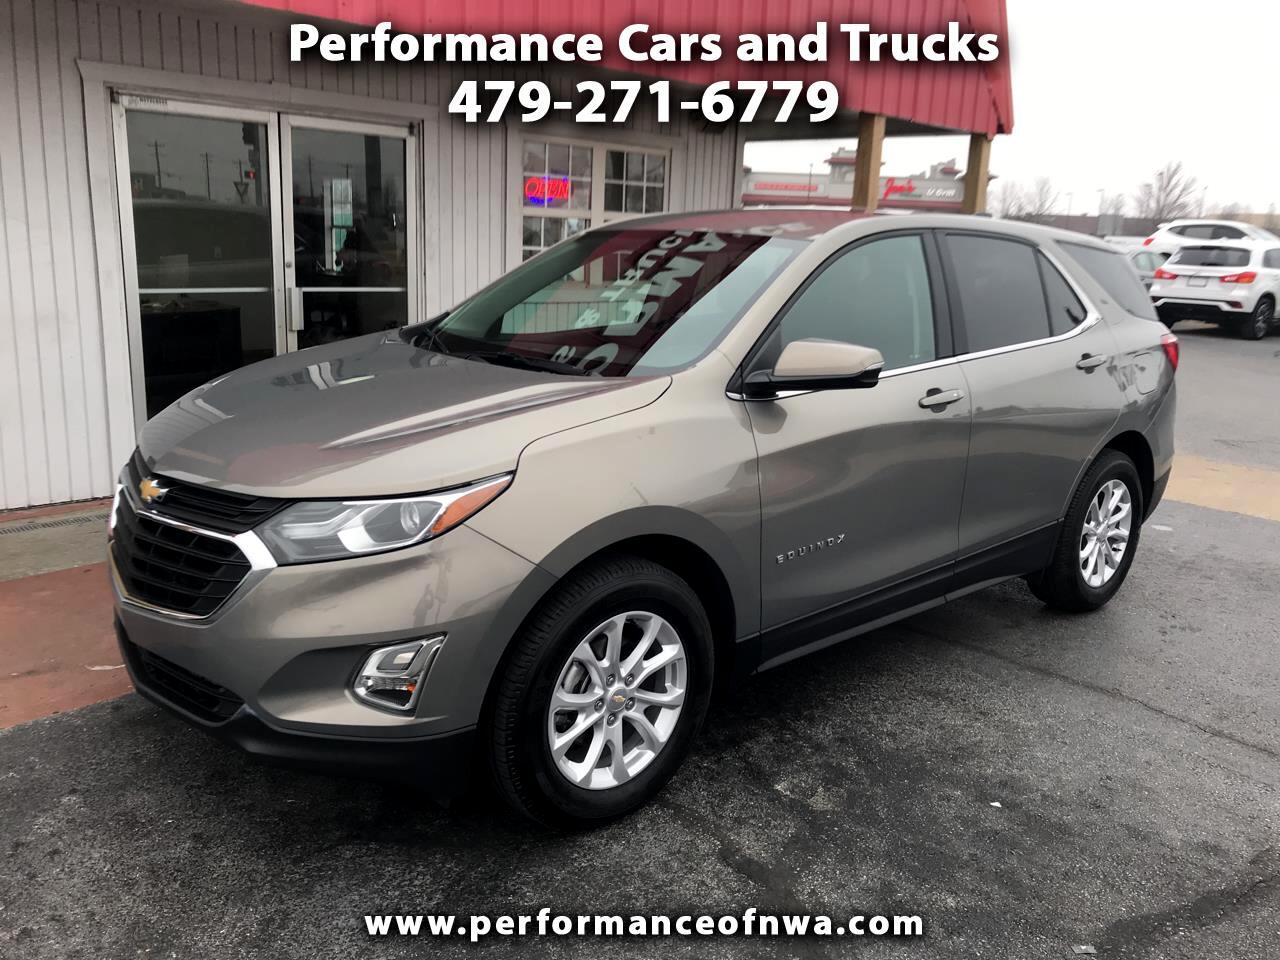 Performance Cars For Sale >> Used Cars For Sale Bentonville Ar 72712 Performance Cars And